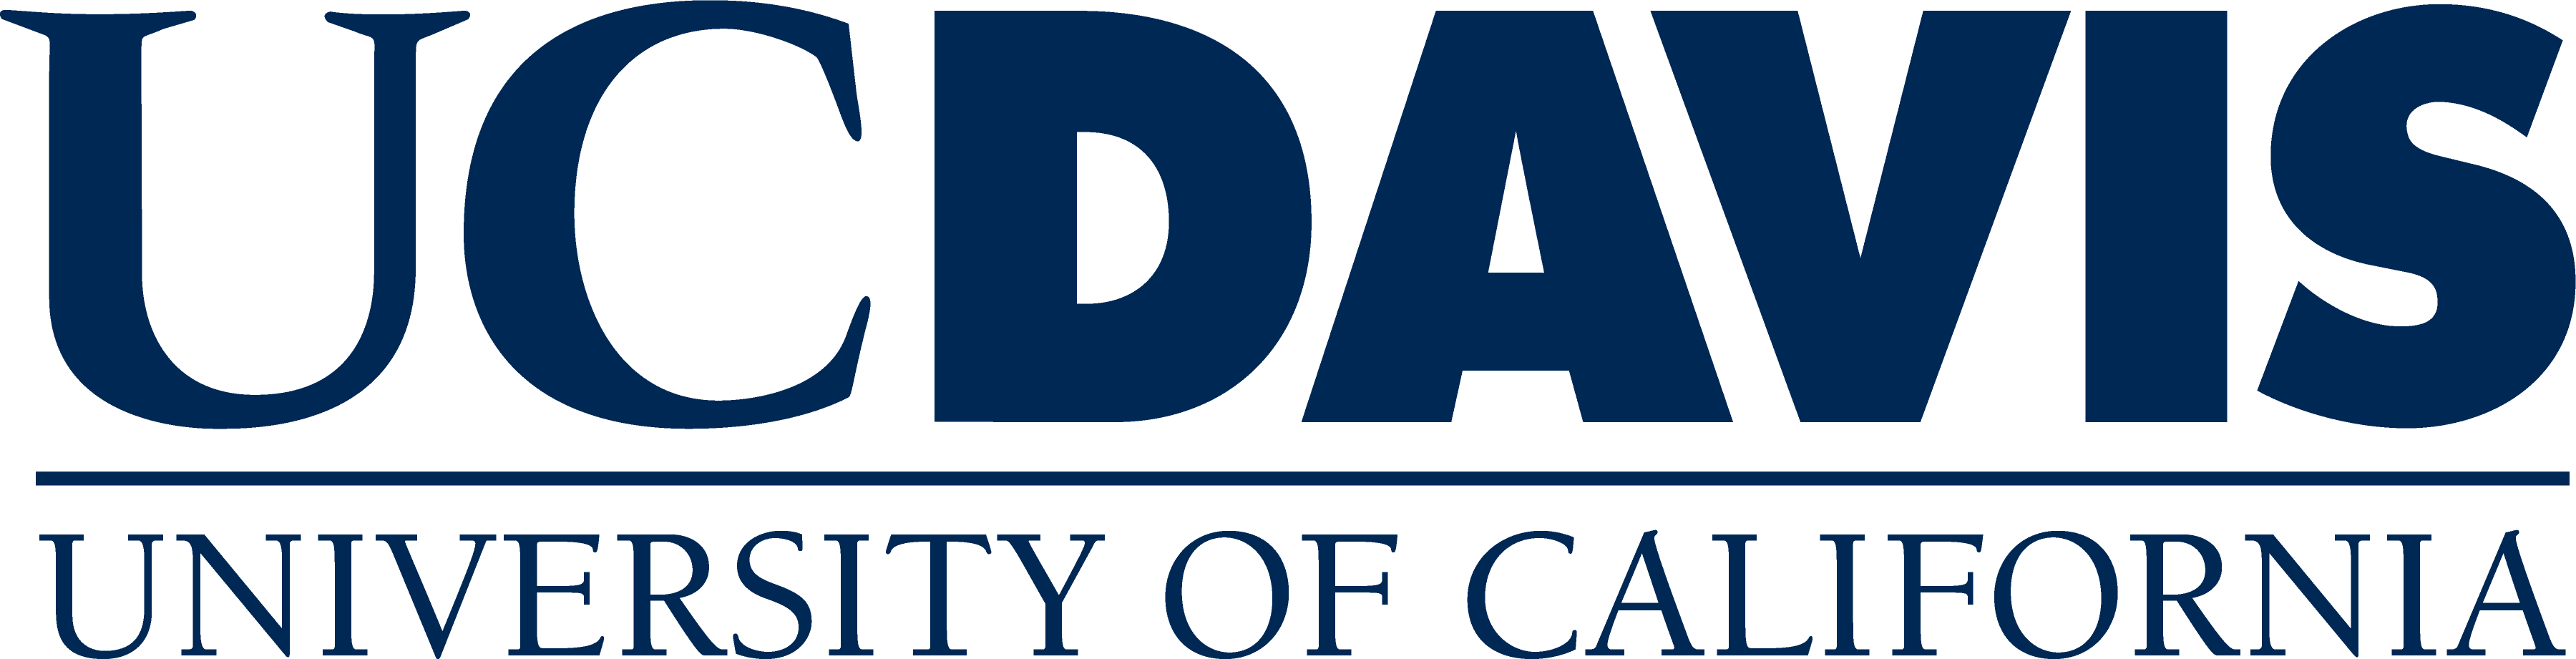 logo UC Davis - University of California, Davis